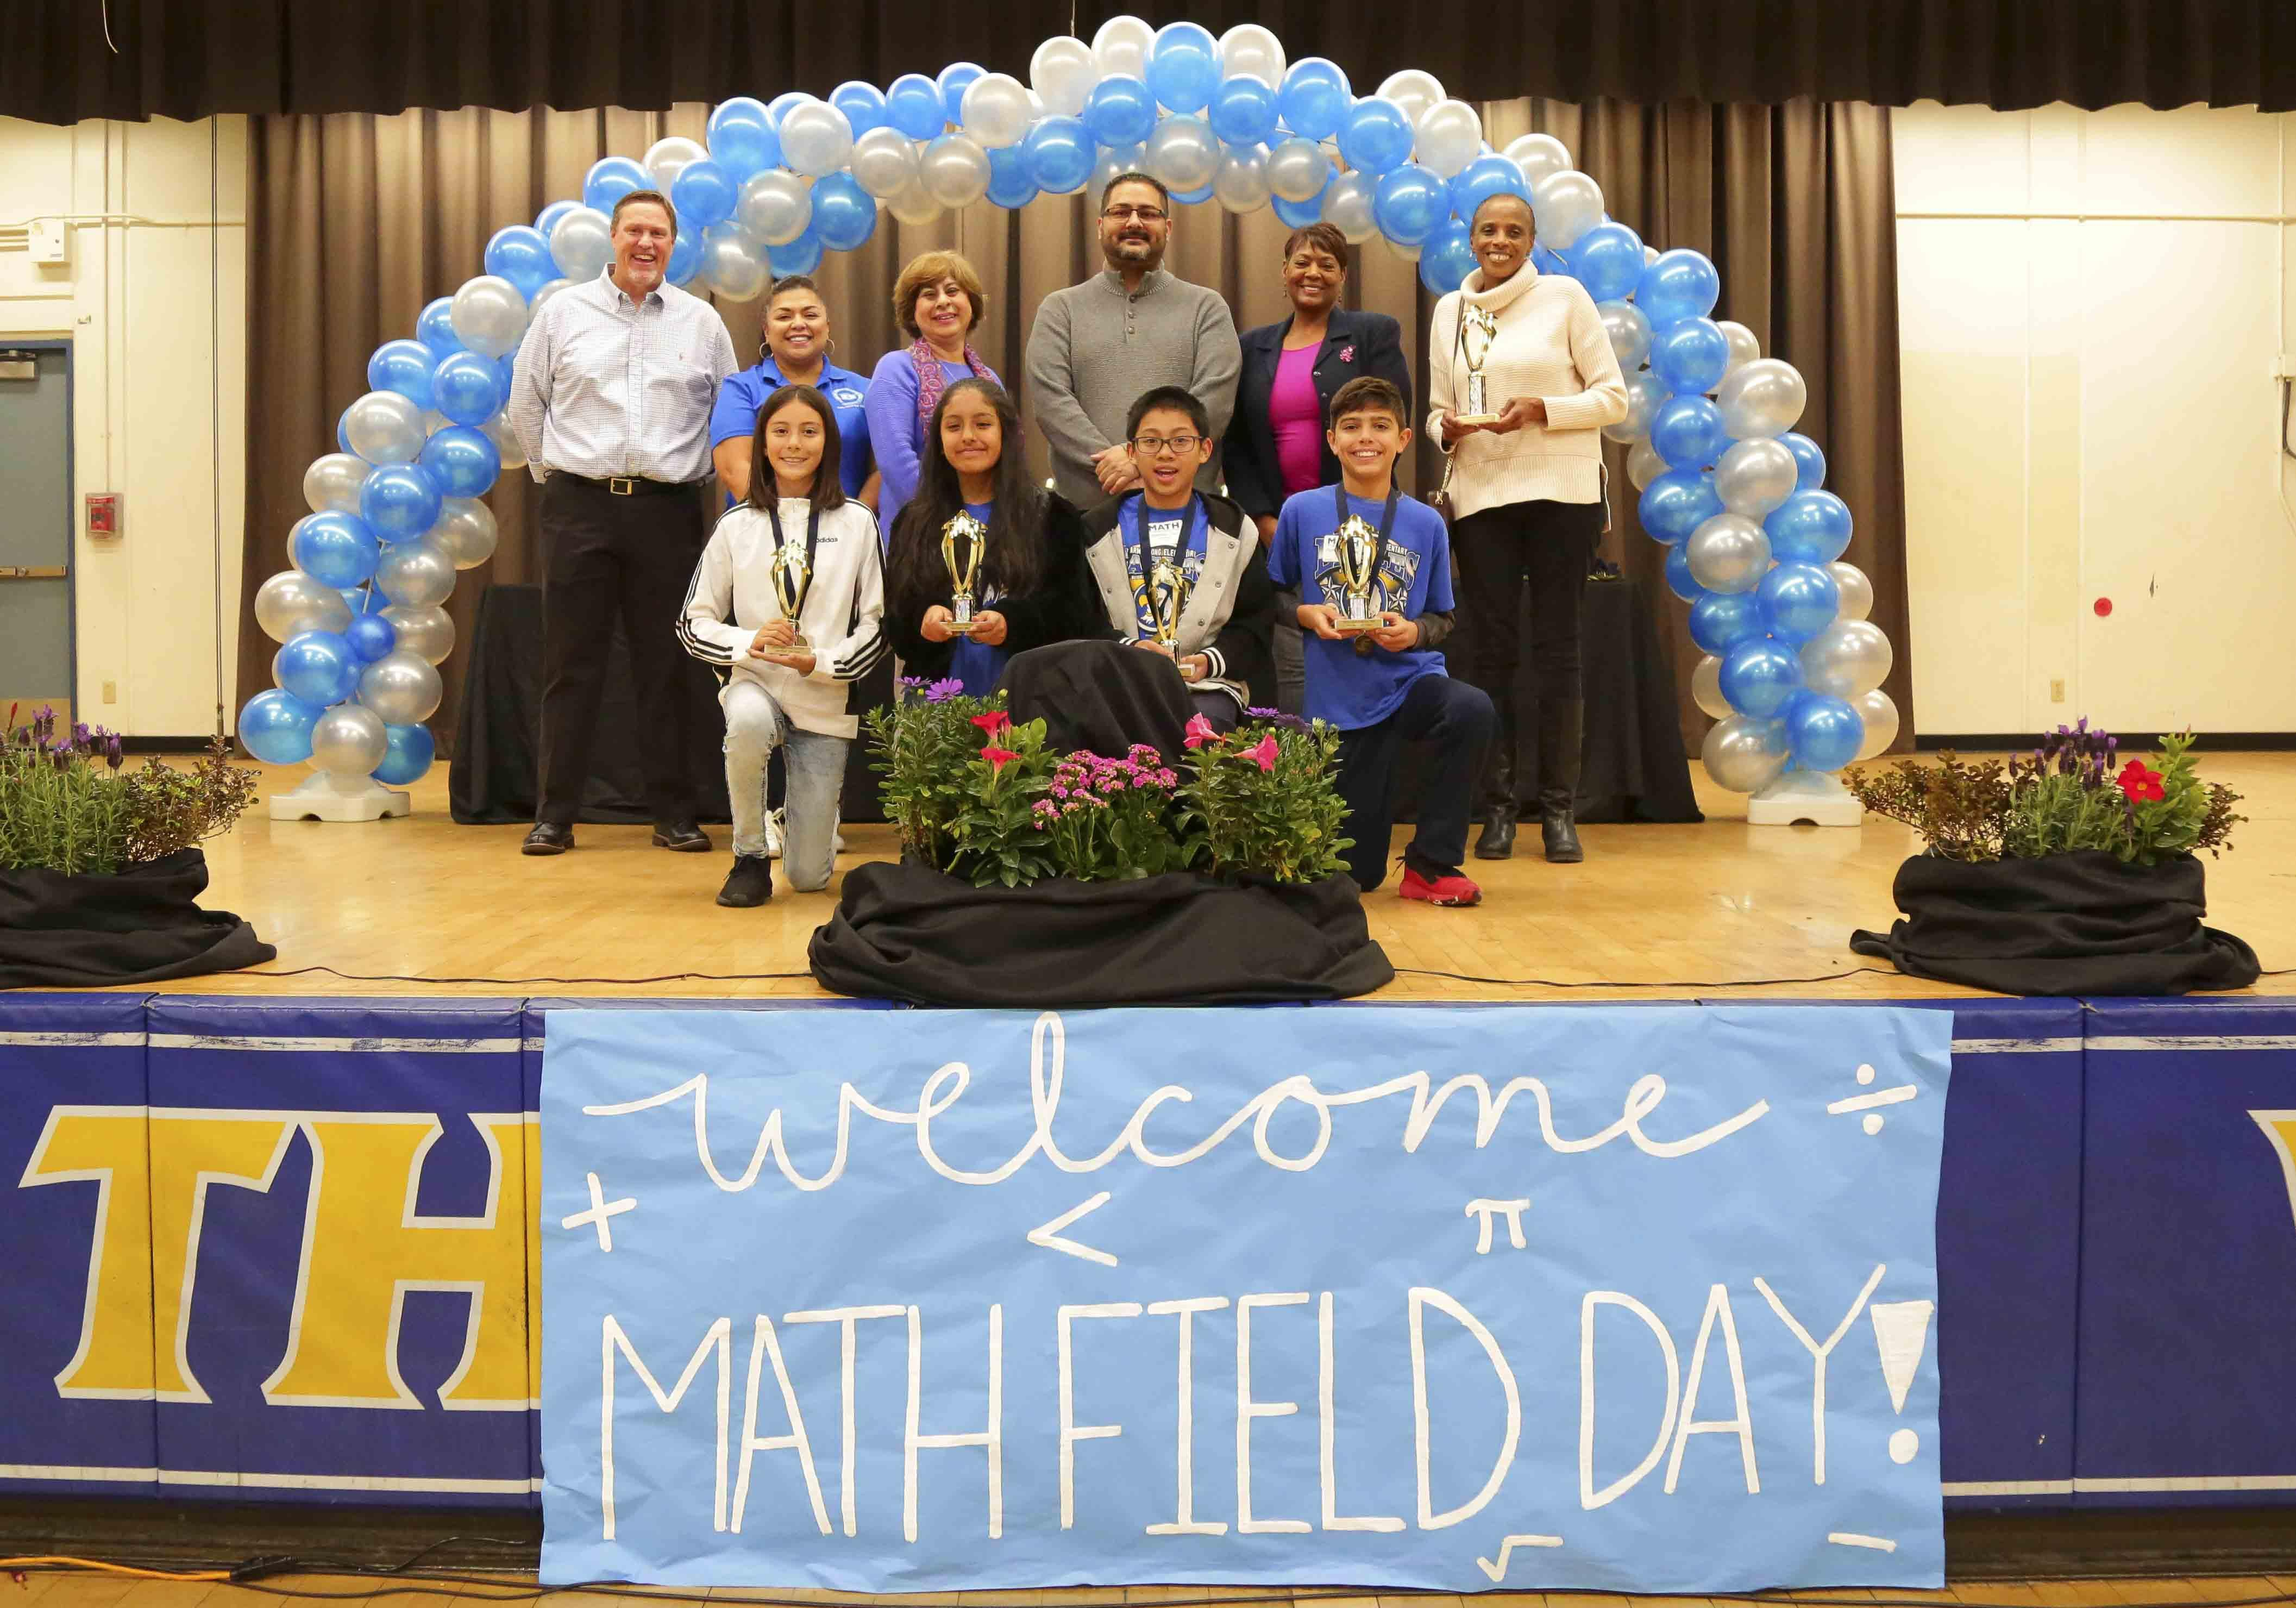 Armstrong 6th Grade students take 2nd Place at the Math Field Day - Congratulations to all of our Eagles that won 2nd Place at the Math Field Day held at Garey High School. We are proud of your academic success!